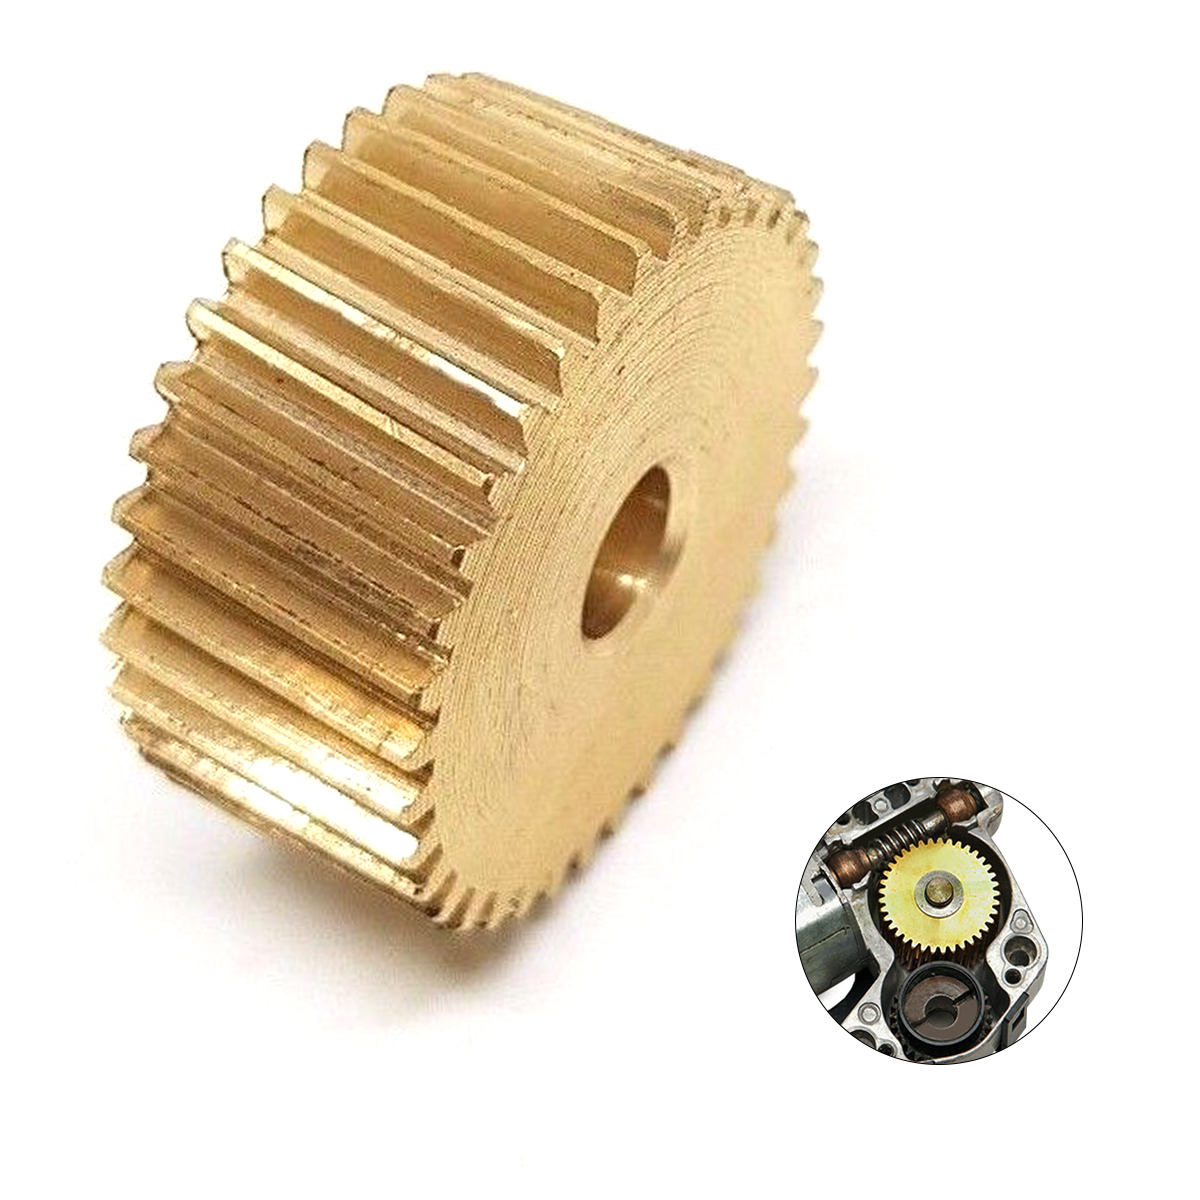 Sunroof Convertible Motor Repair Gear For VW Polo Lupo Openair Folding Soft Top